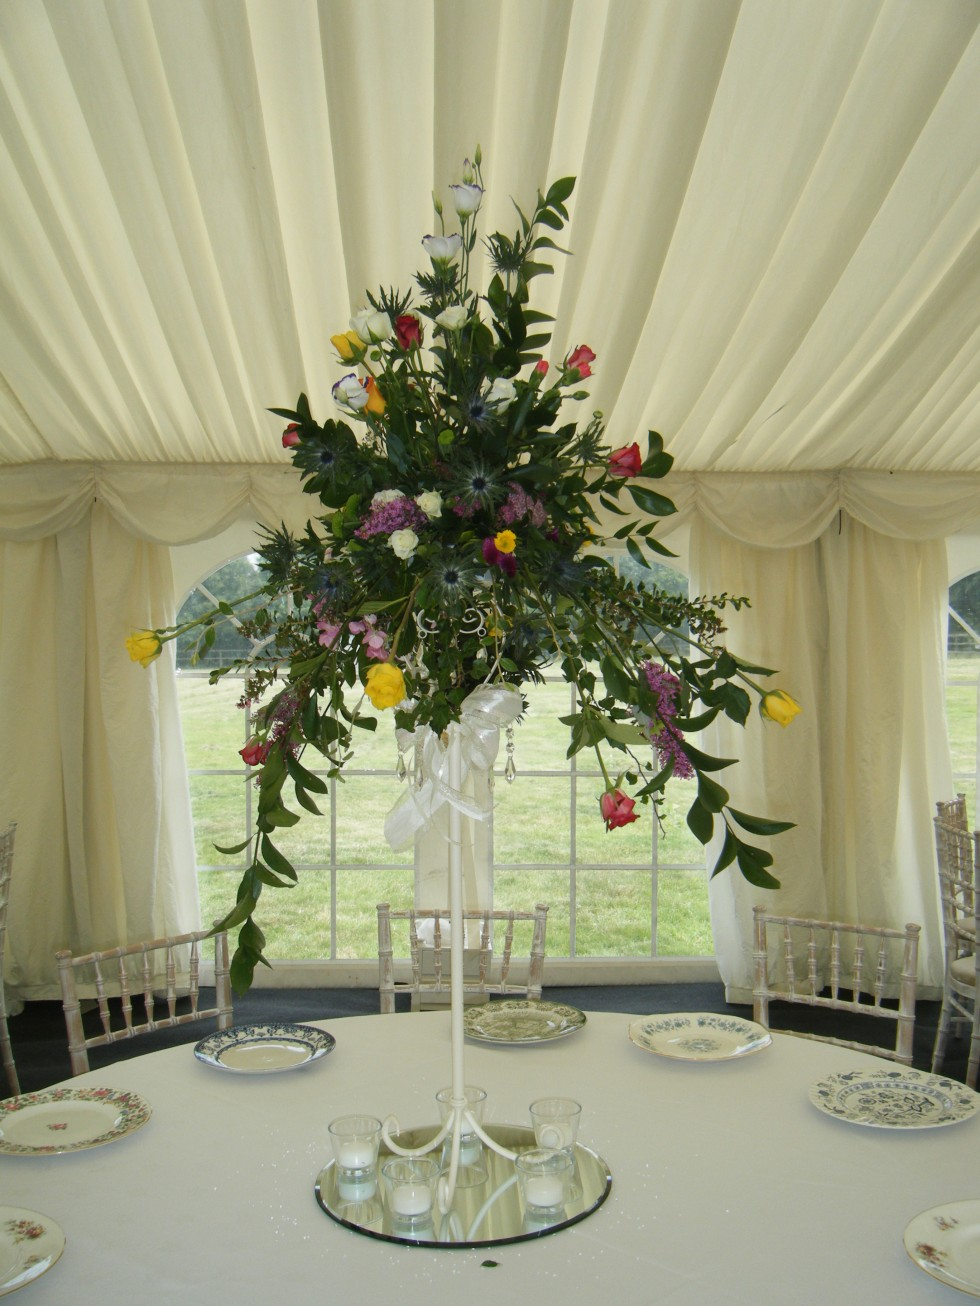 Wedding Table Wedding Table Decorations Hire hire photogalleries rainbow weddings wedding and events tall vintage mixed country flowers table centrepiece on a hired candle holder